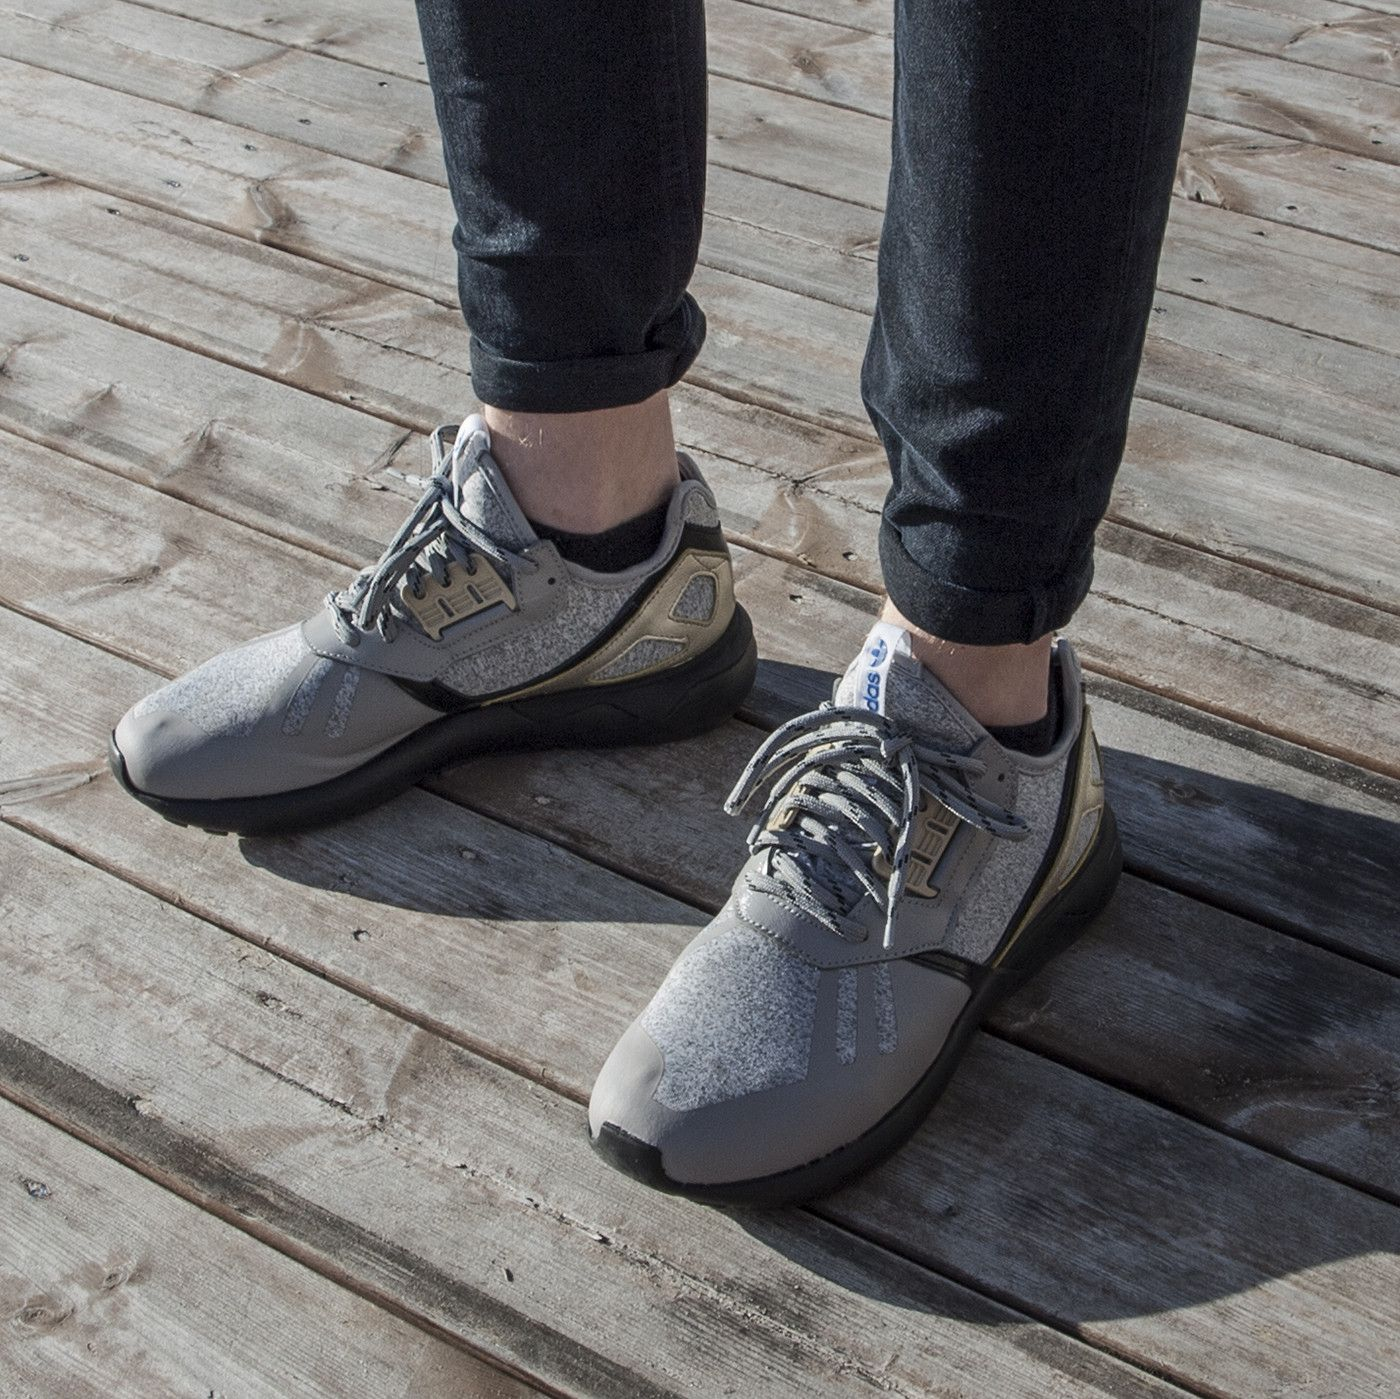 Light Gray Covers The adidas Tubular Radial